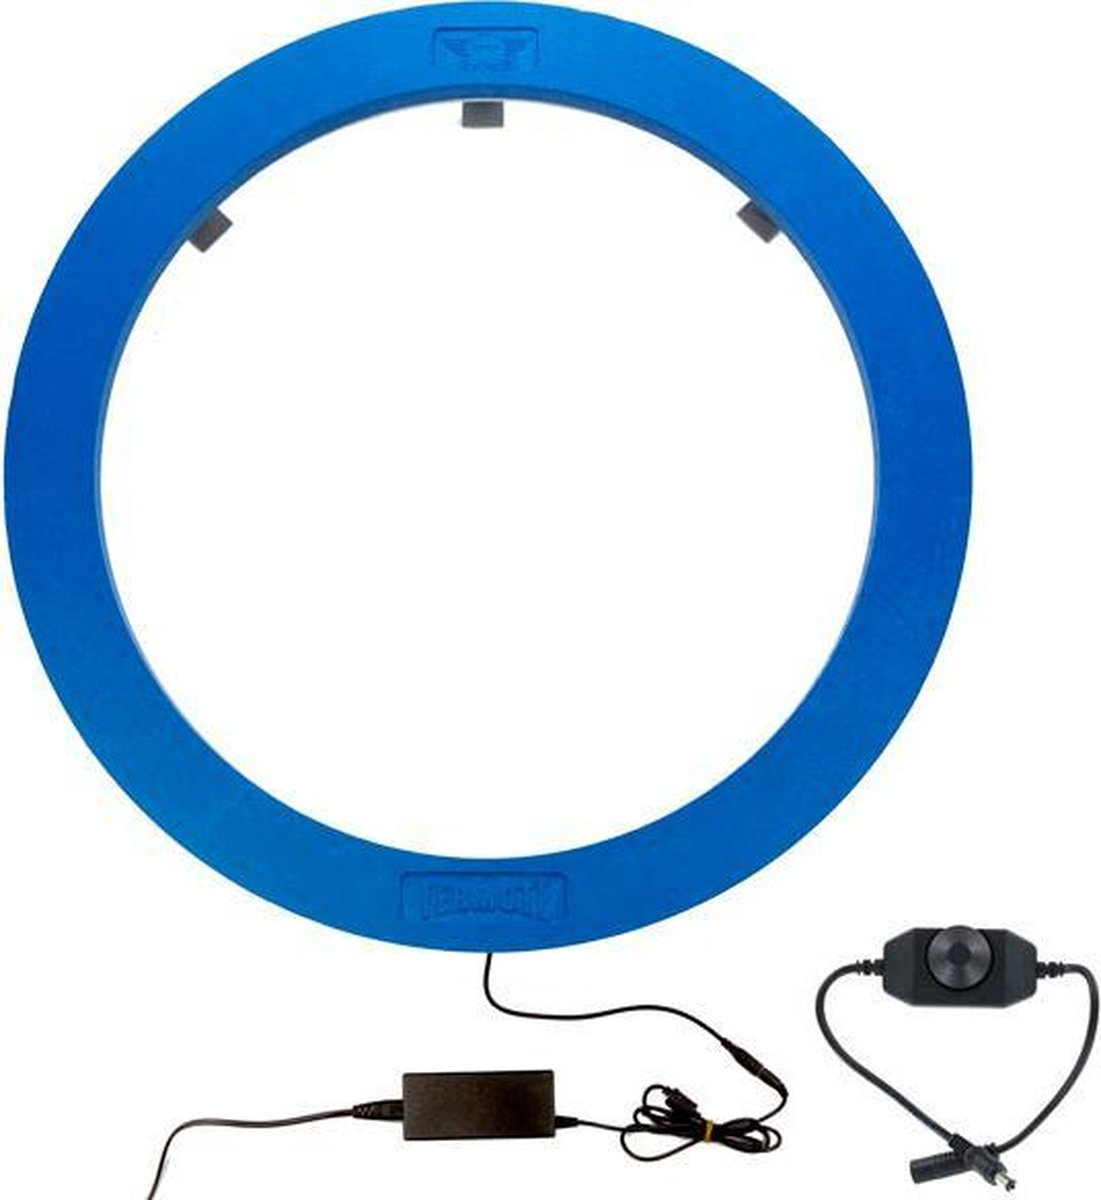 Bull's Termote 1.0 Basic Led surround - Blauw